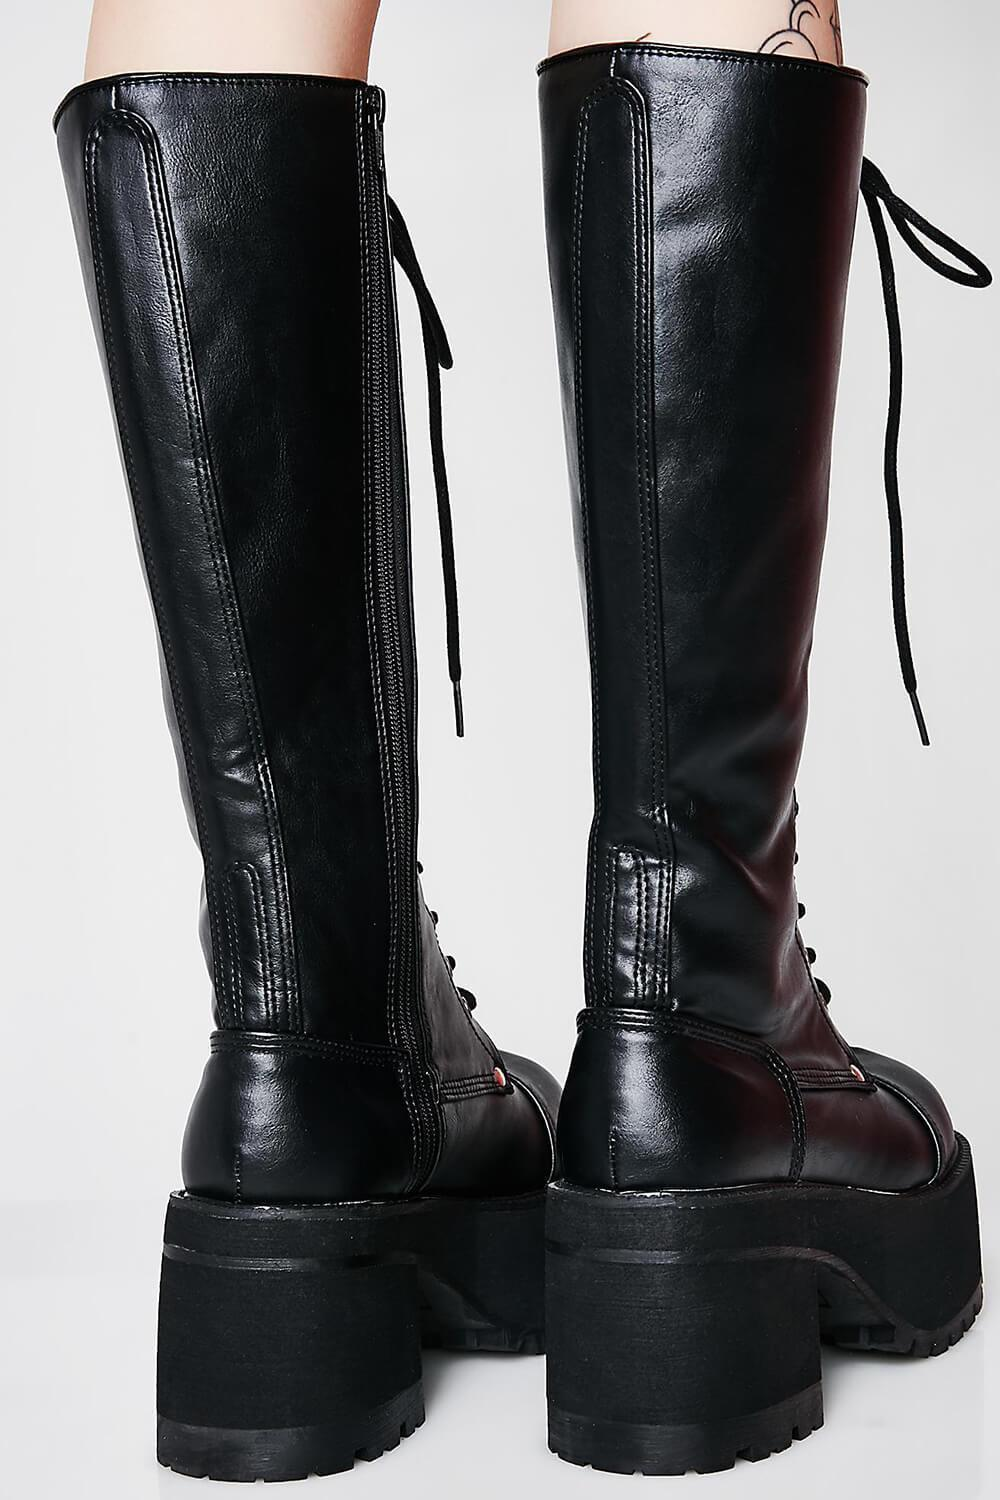 Black Lace Up Knee High Chunky Platform Boots